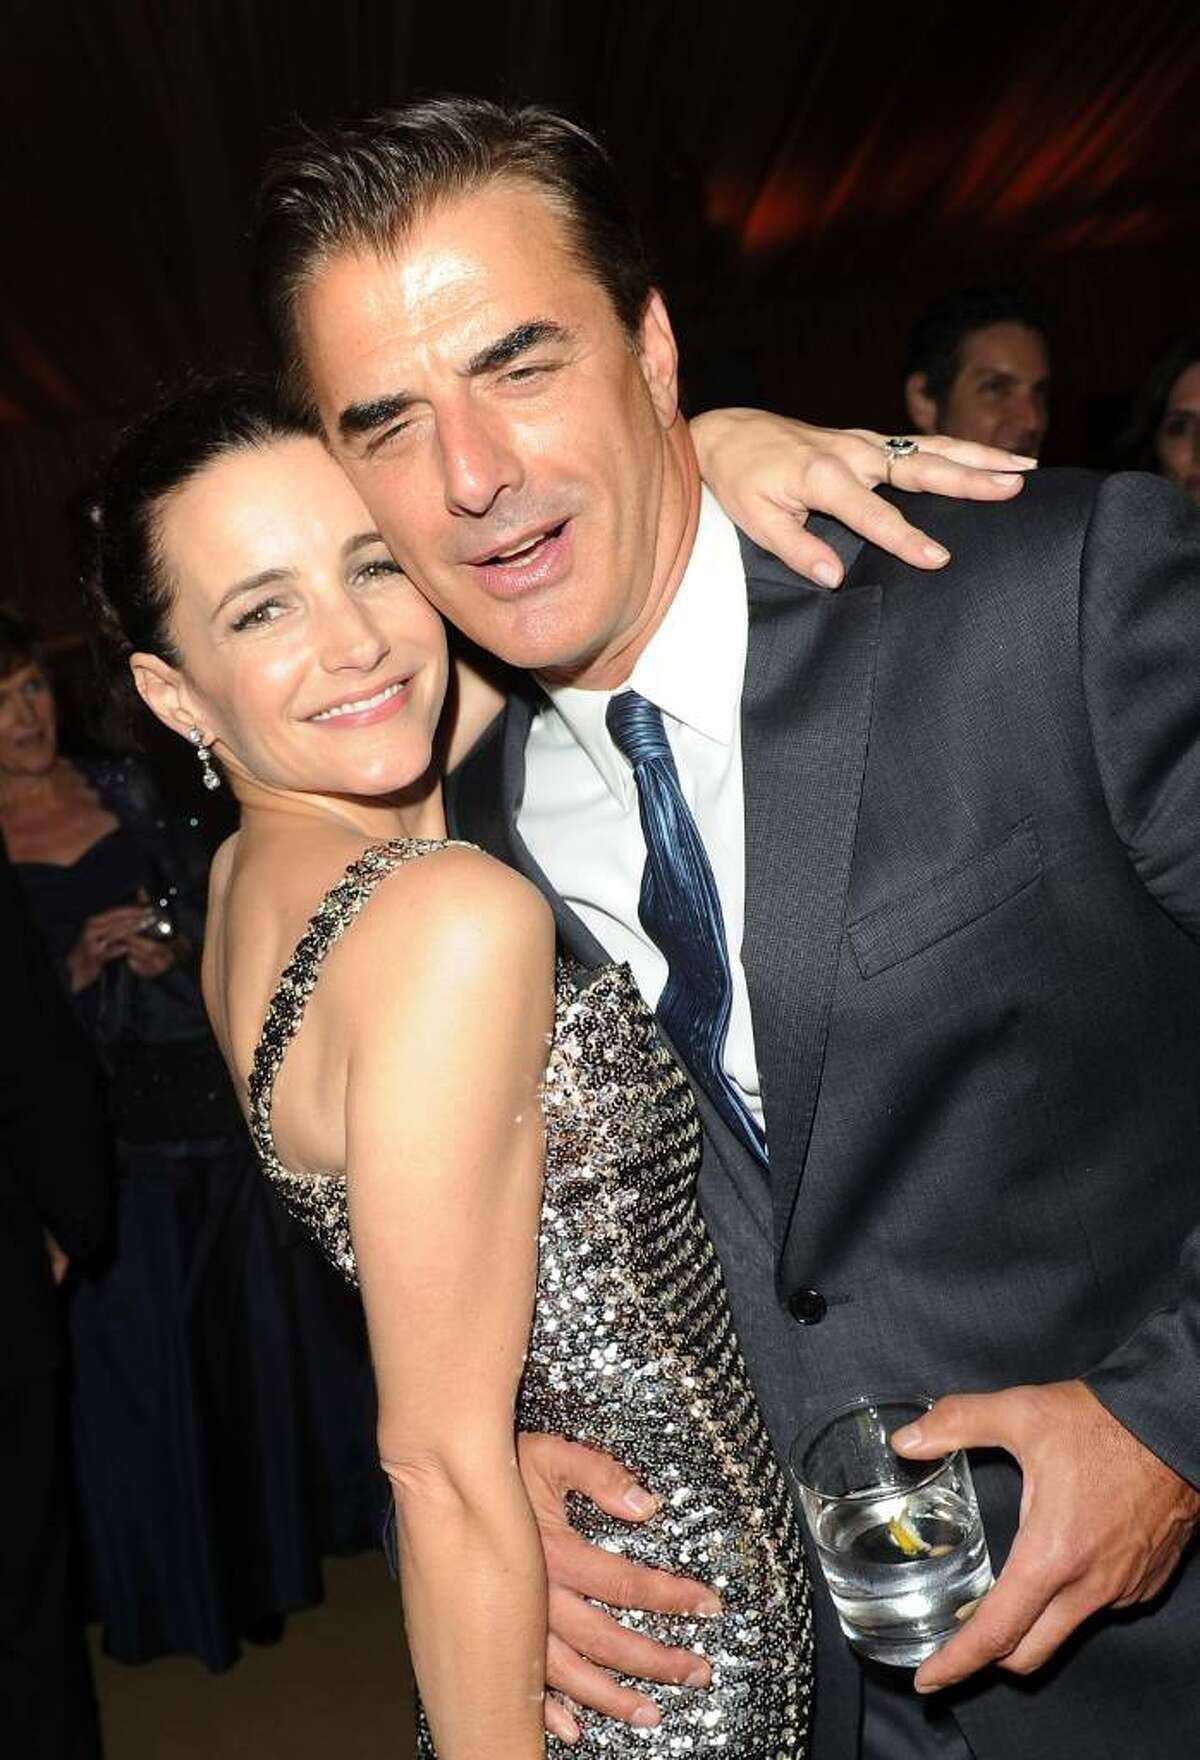 NEW YORK - MAY 24: Actress Kristin Davis and actor Chris Noth attend the after party following the premiere of